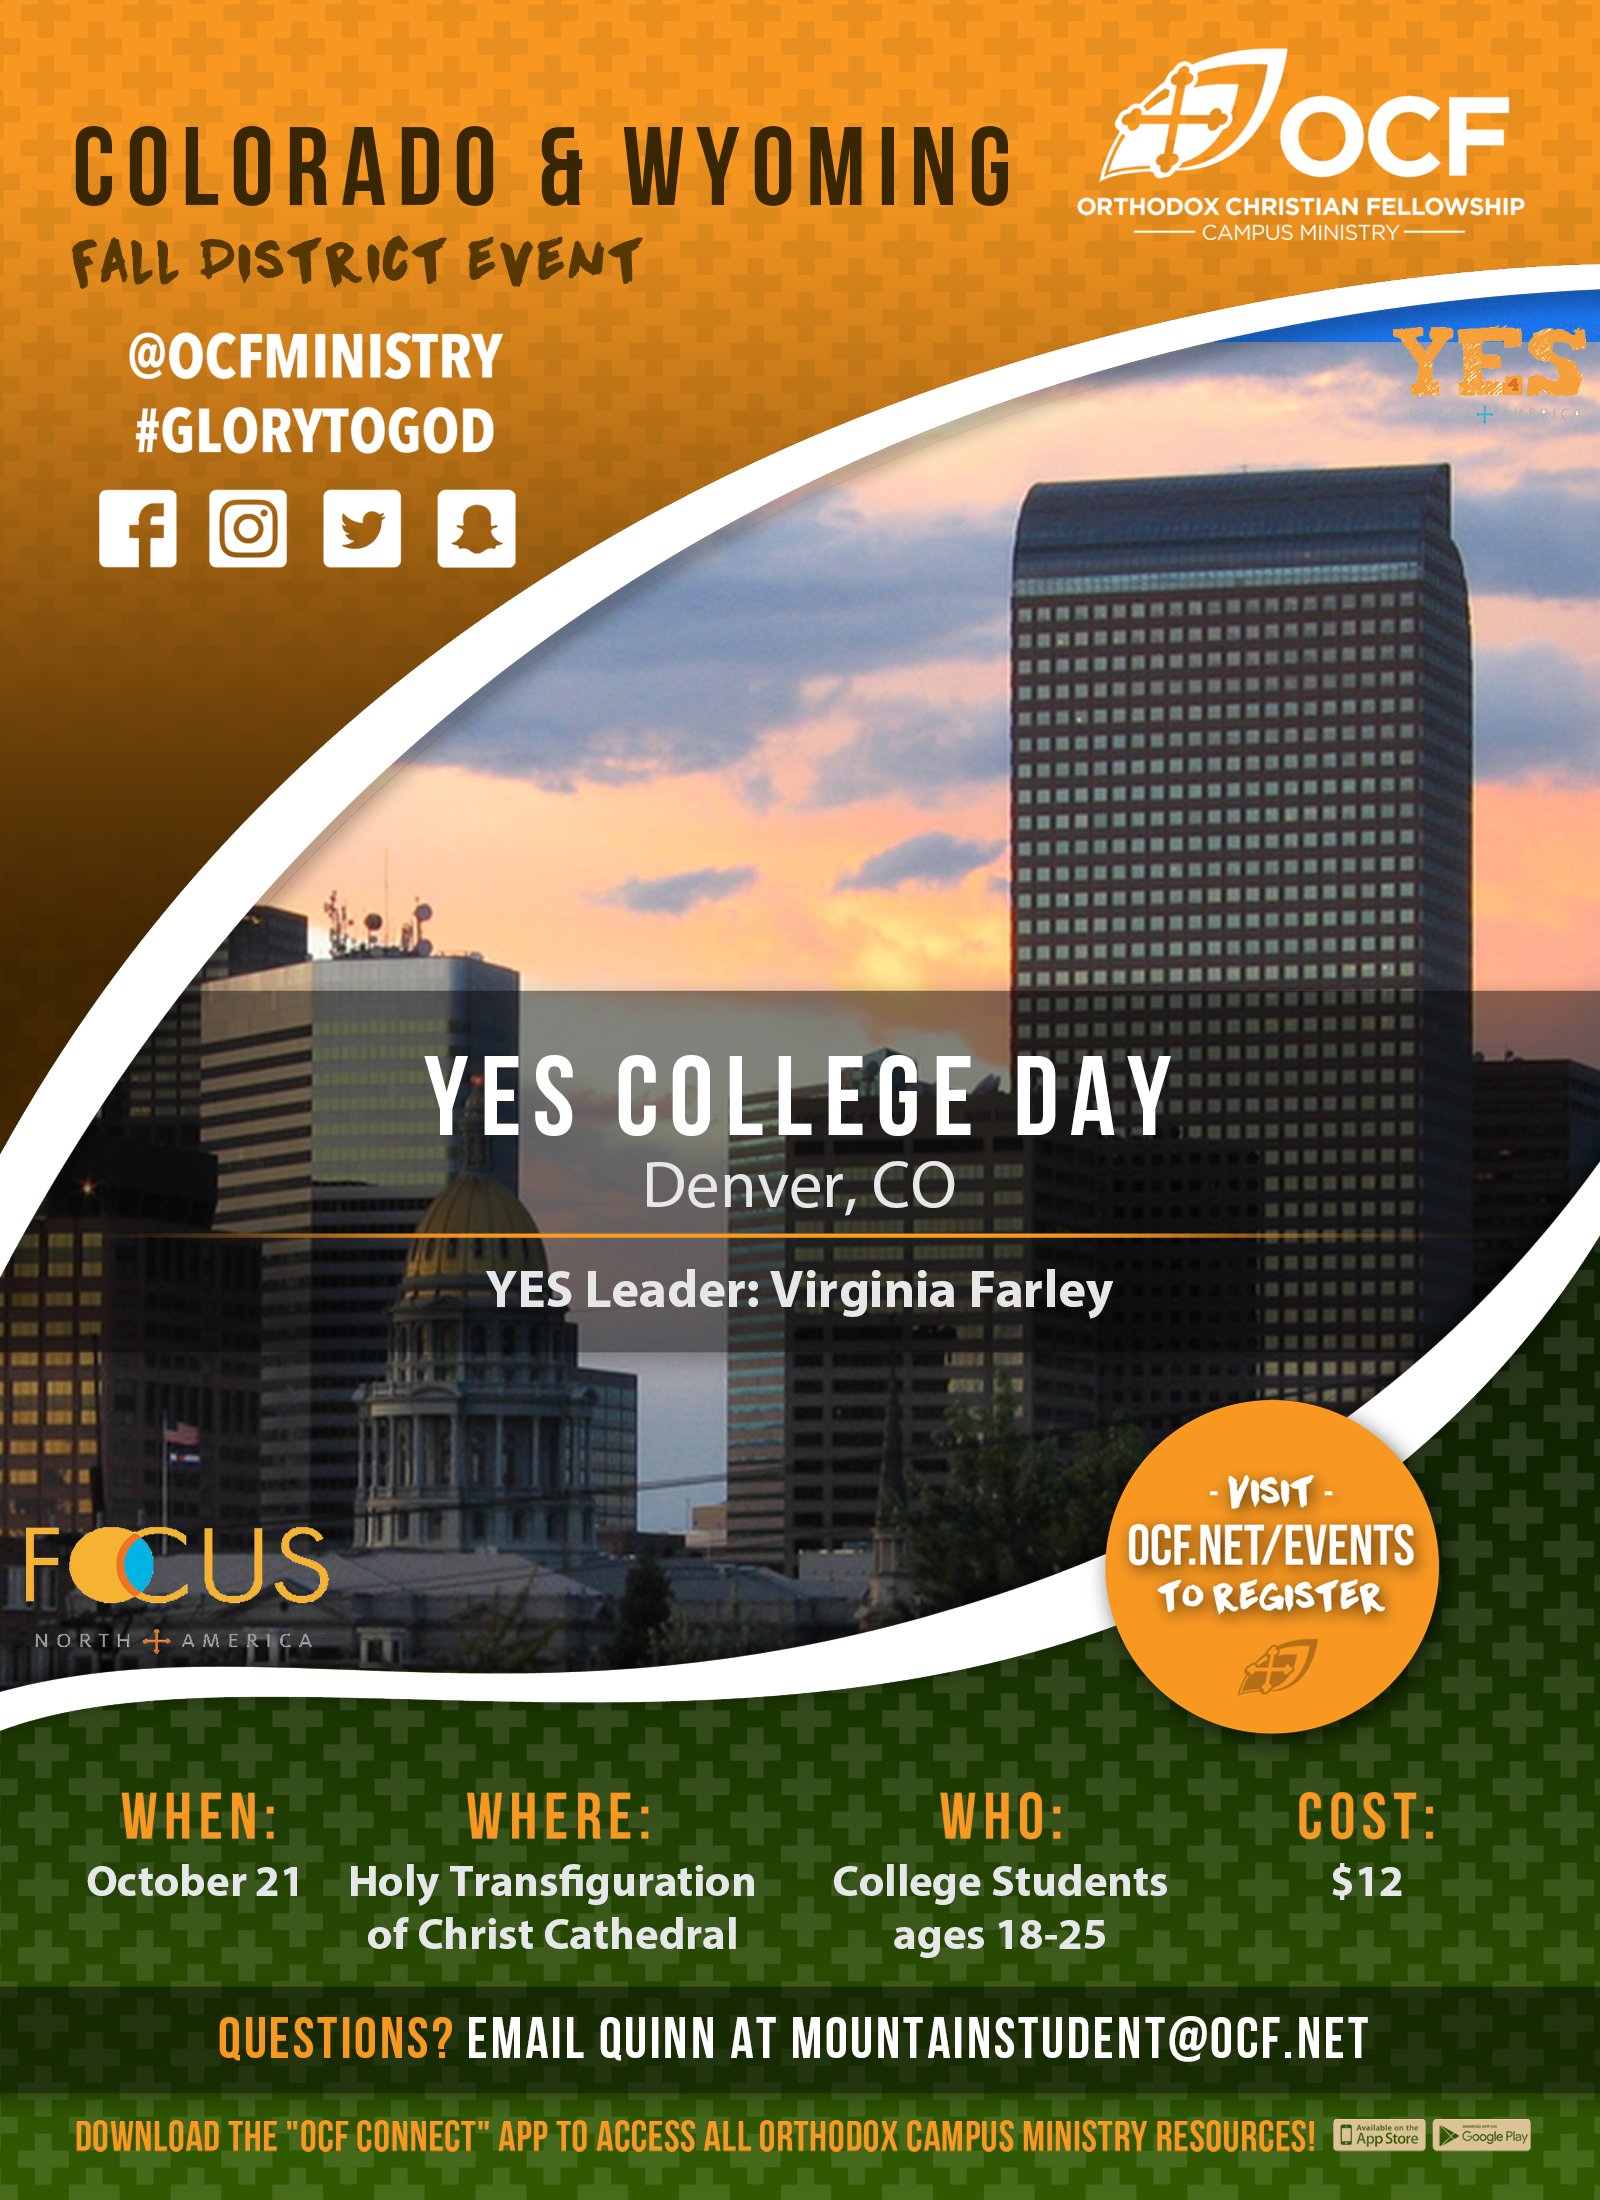 What Are YES College Days and Why Should I Go?